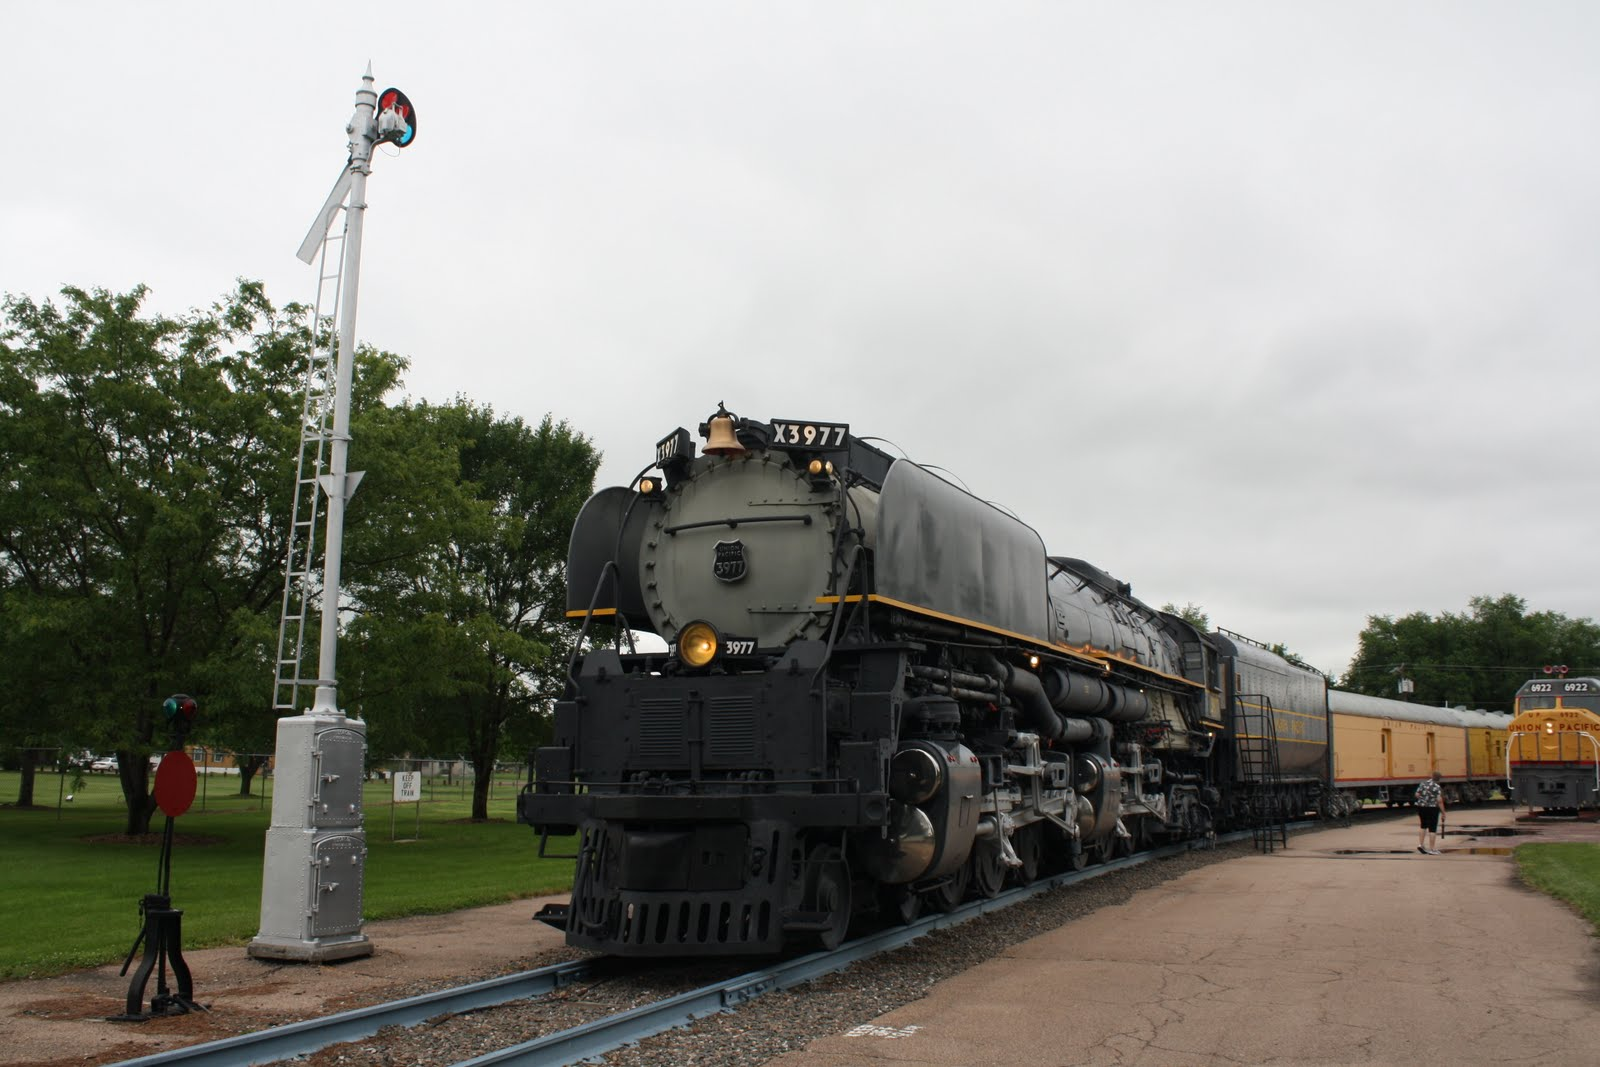 Tomandev July 7 Union Pacific Challenger And Diesel